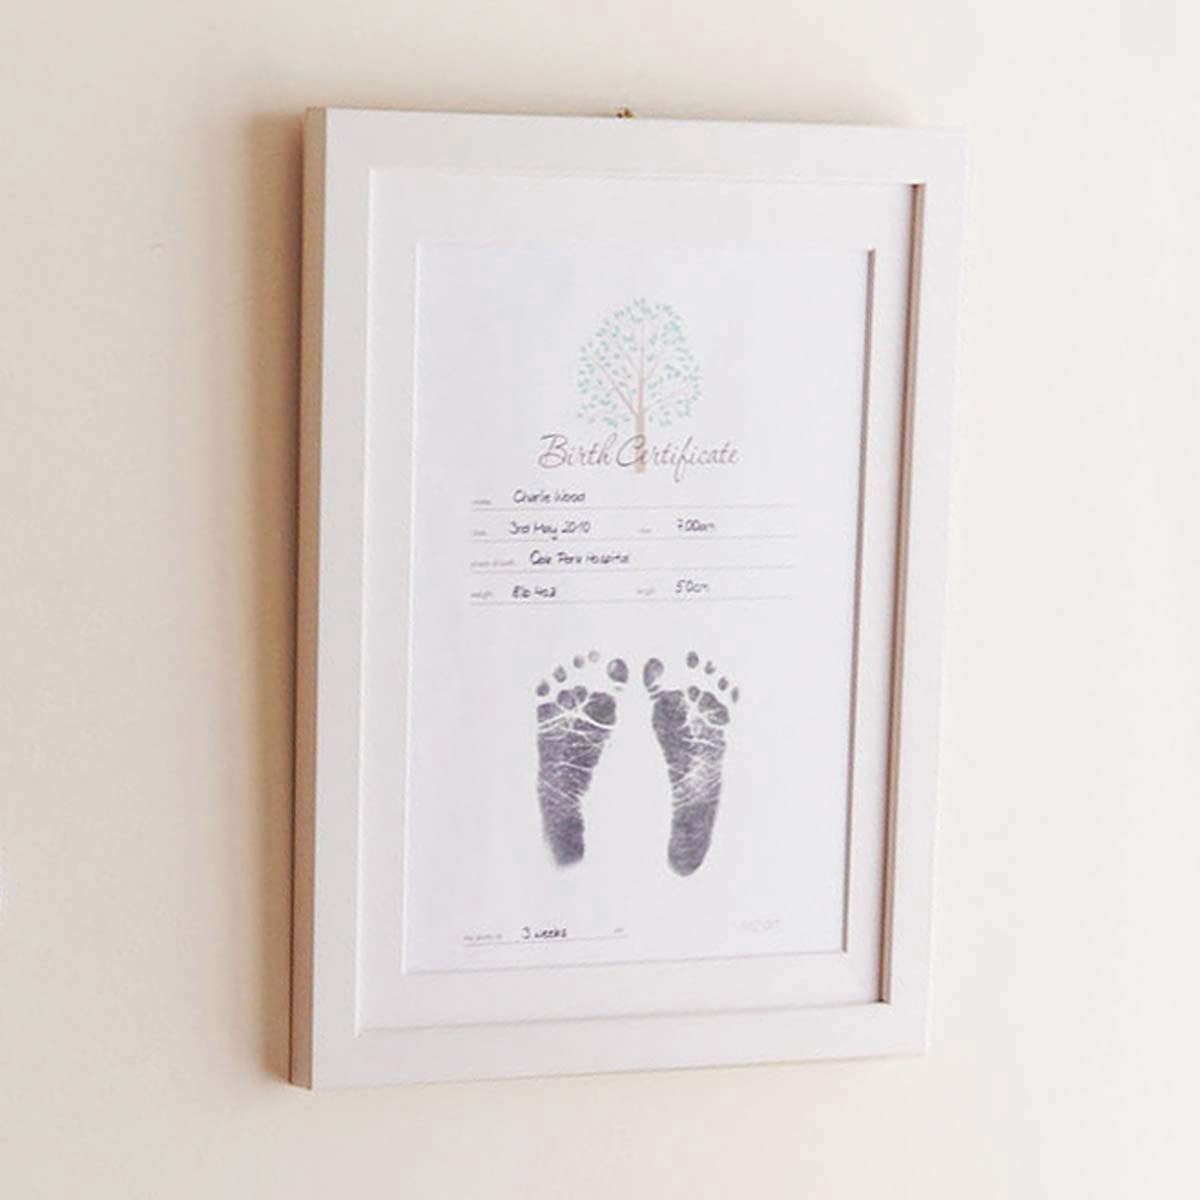 Inkless Print Birth Certificate With Babys Birth Details And